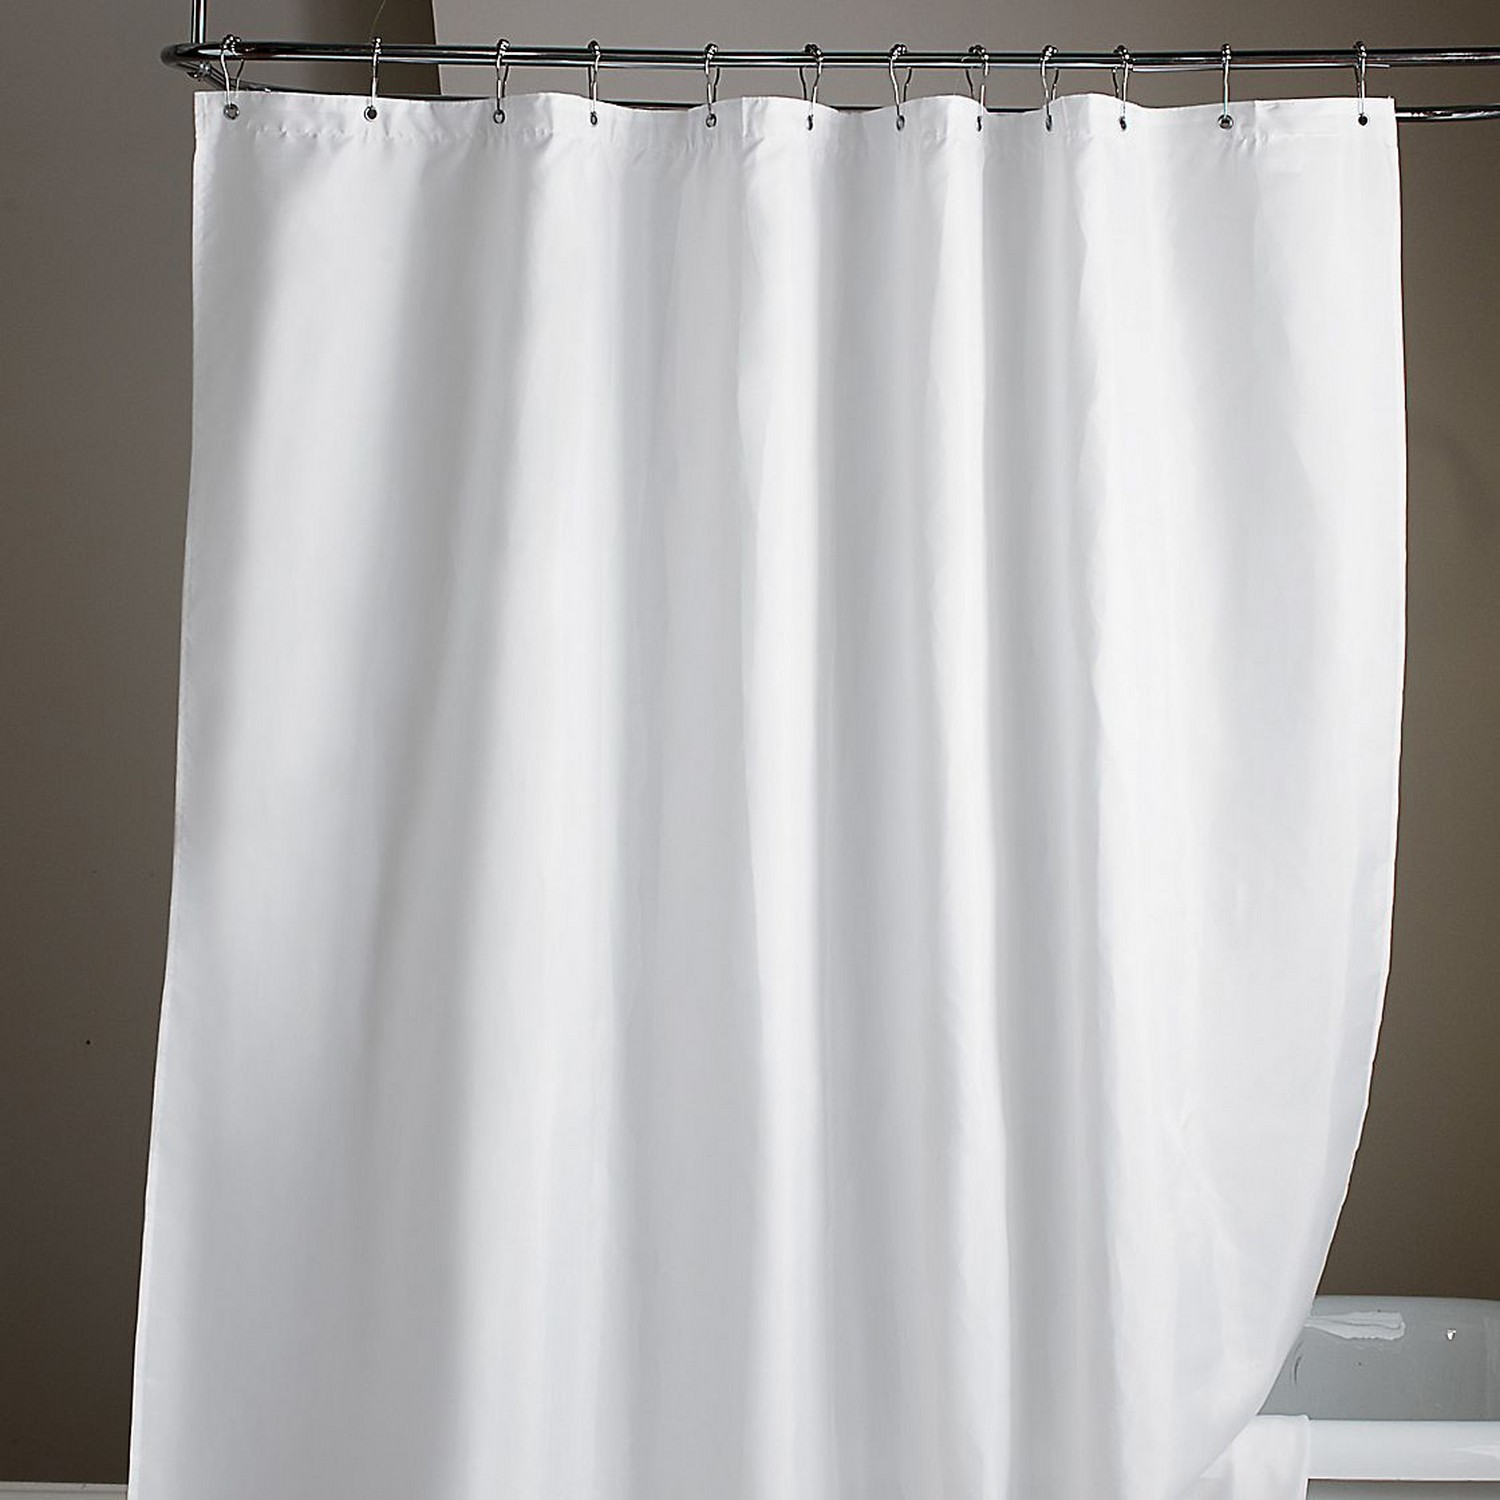 Shower Curtain Liner | Extra Long Shower Curtain Liner | Shower Curtains Liner